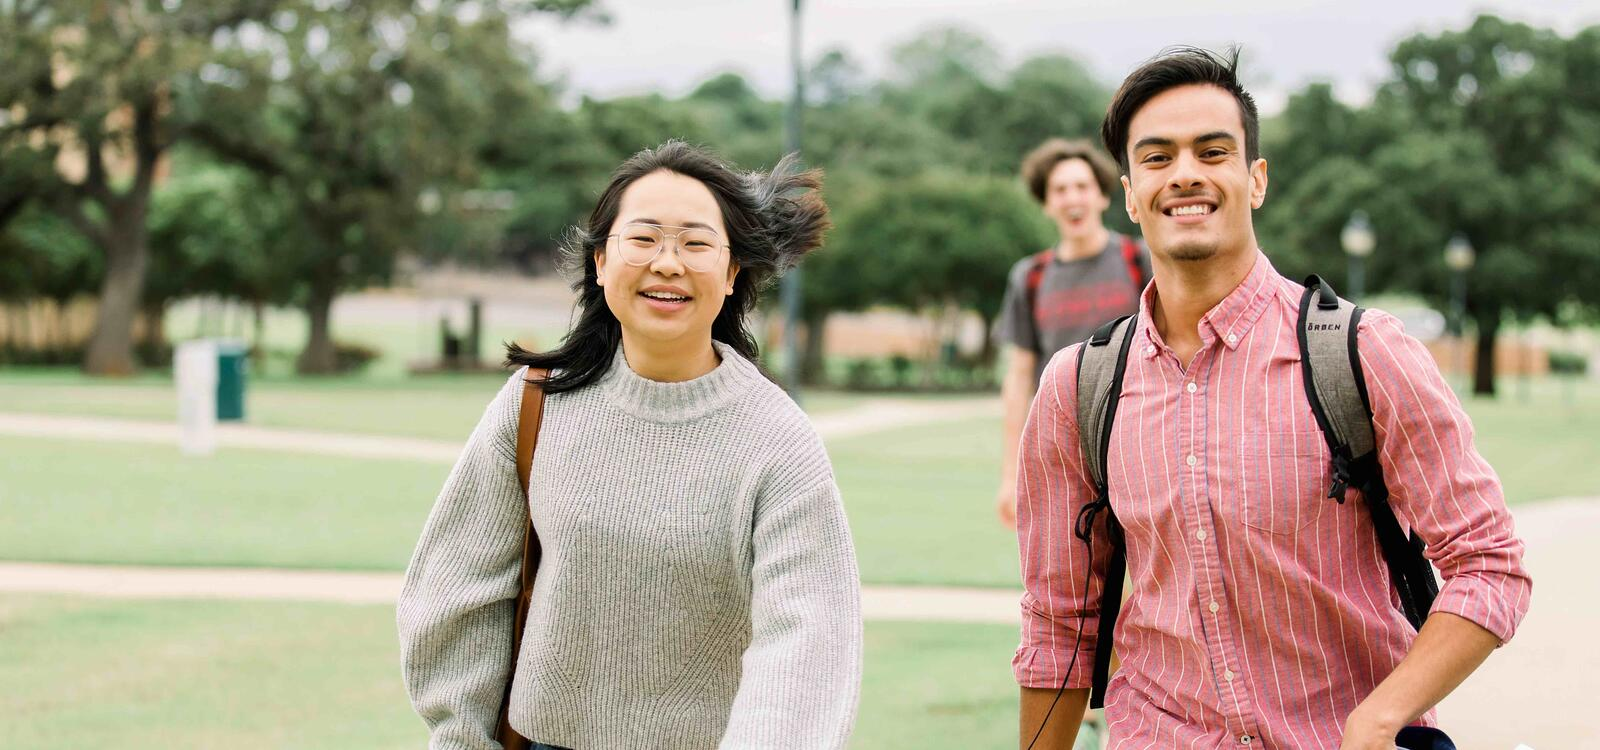 Two students walking across campus together as they talk and smile.